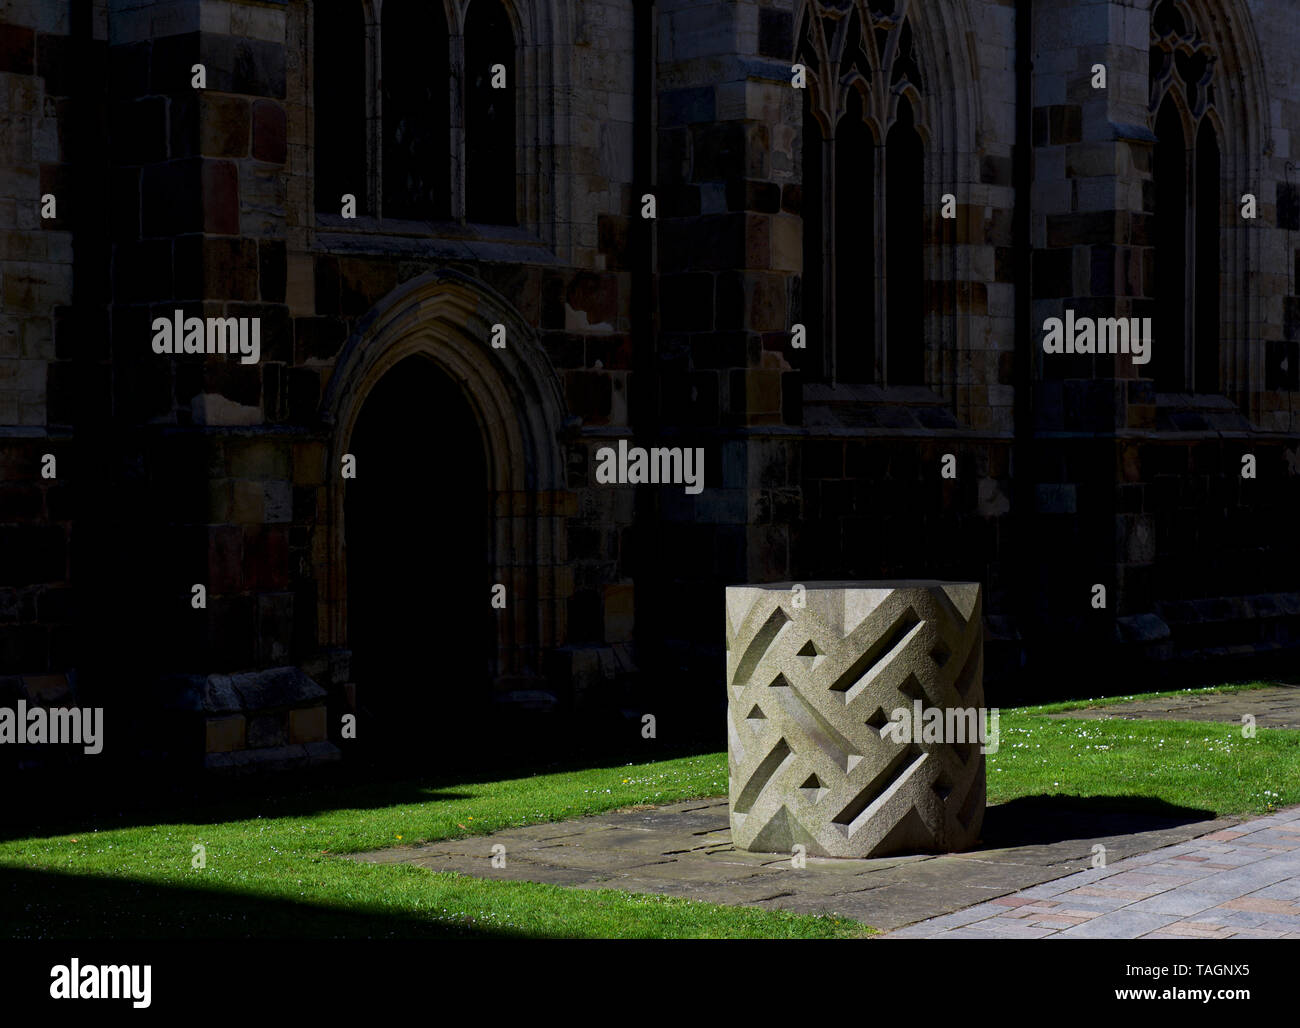 Sculpture by John Maine, RA, in Churchside, next to minster, Howden, East Yorkshire, England UK - Stock Image